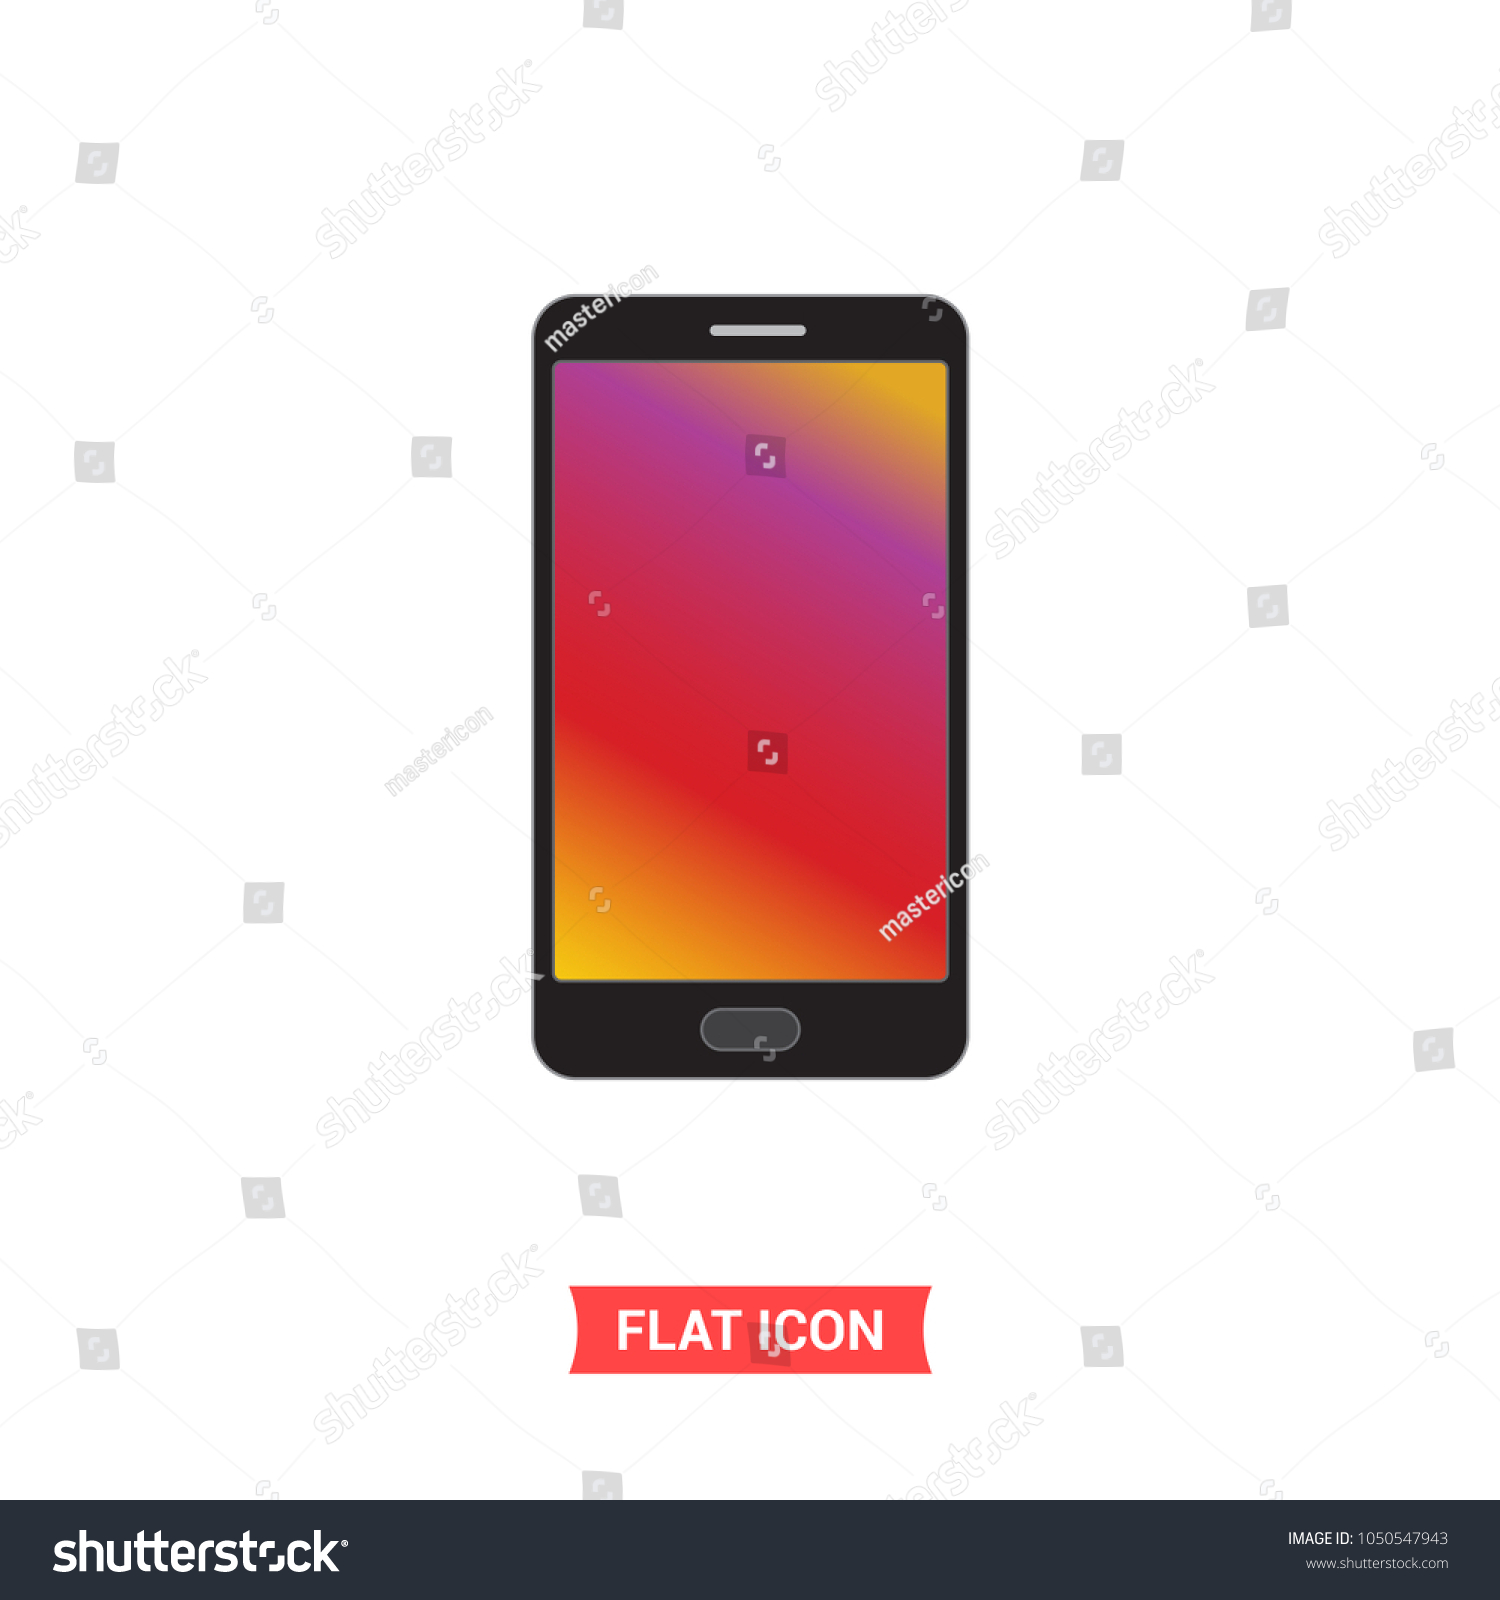 Samsung galaxy symbol icon gradient screen stock vector 1050547943 samsung galaxy symbol icon gradient screen smartphone vector simple flat design on white background buycottarizona Images